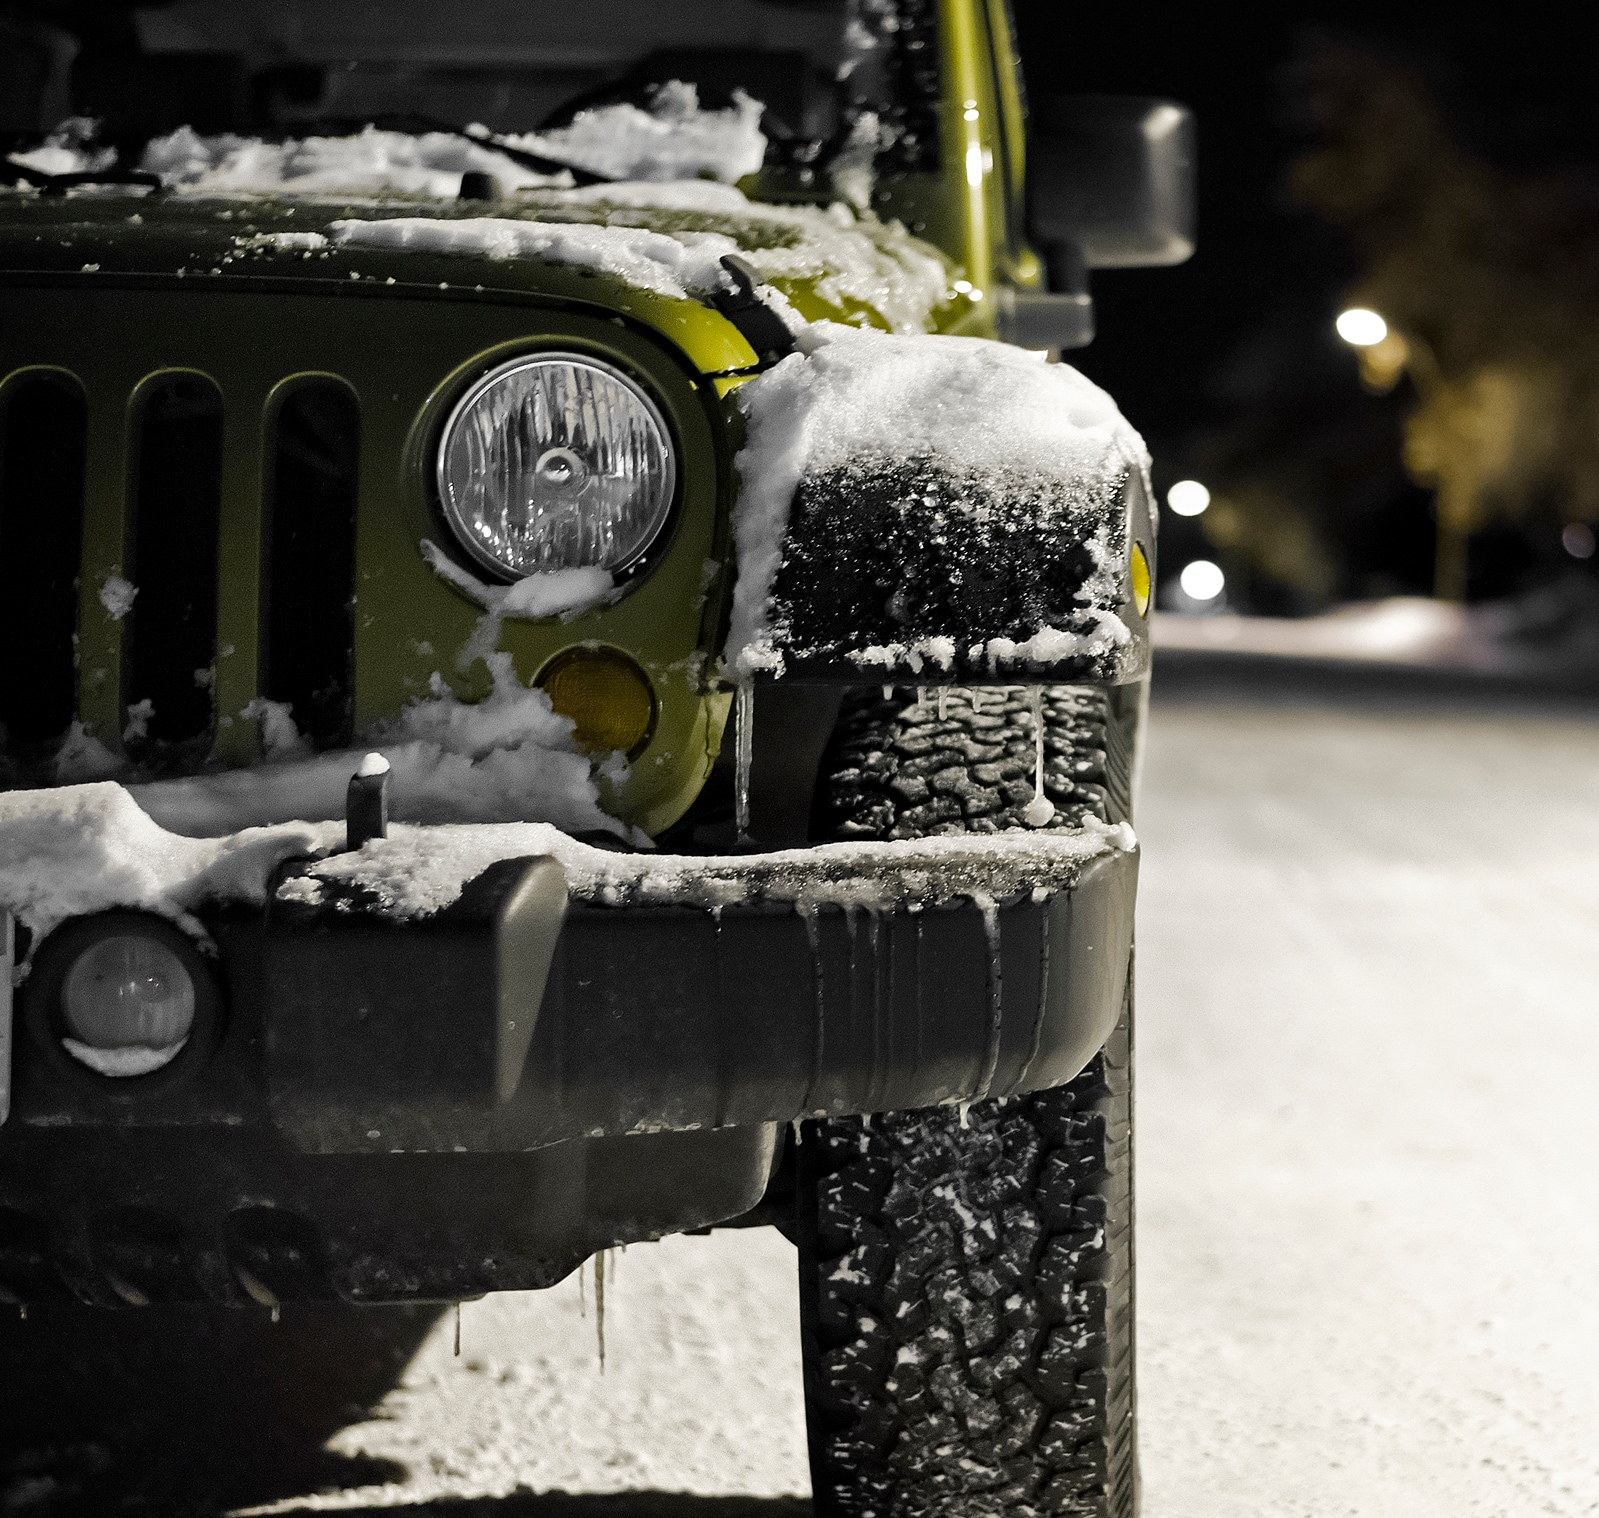 Jeep Wrangler Winter